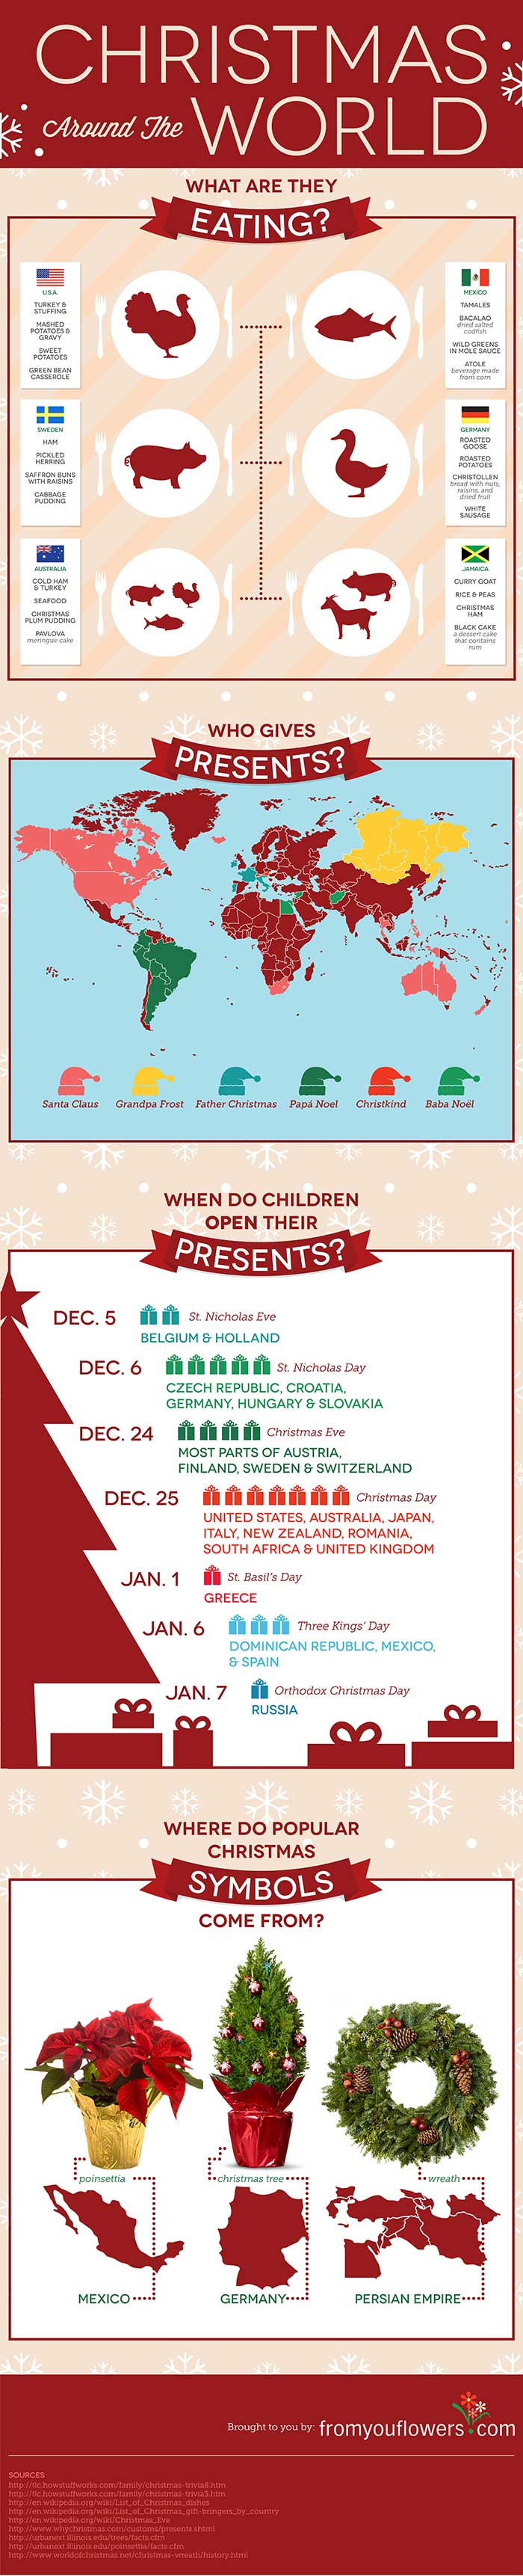 Christmas Around the World Infographic